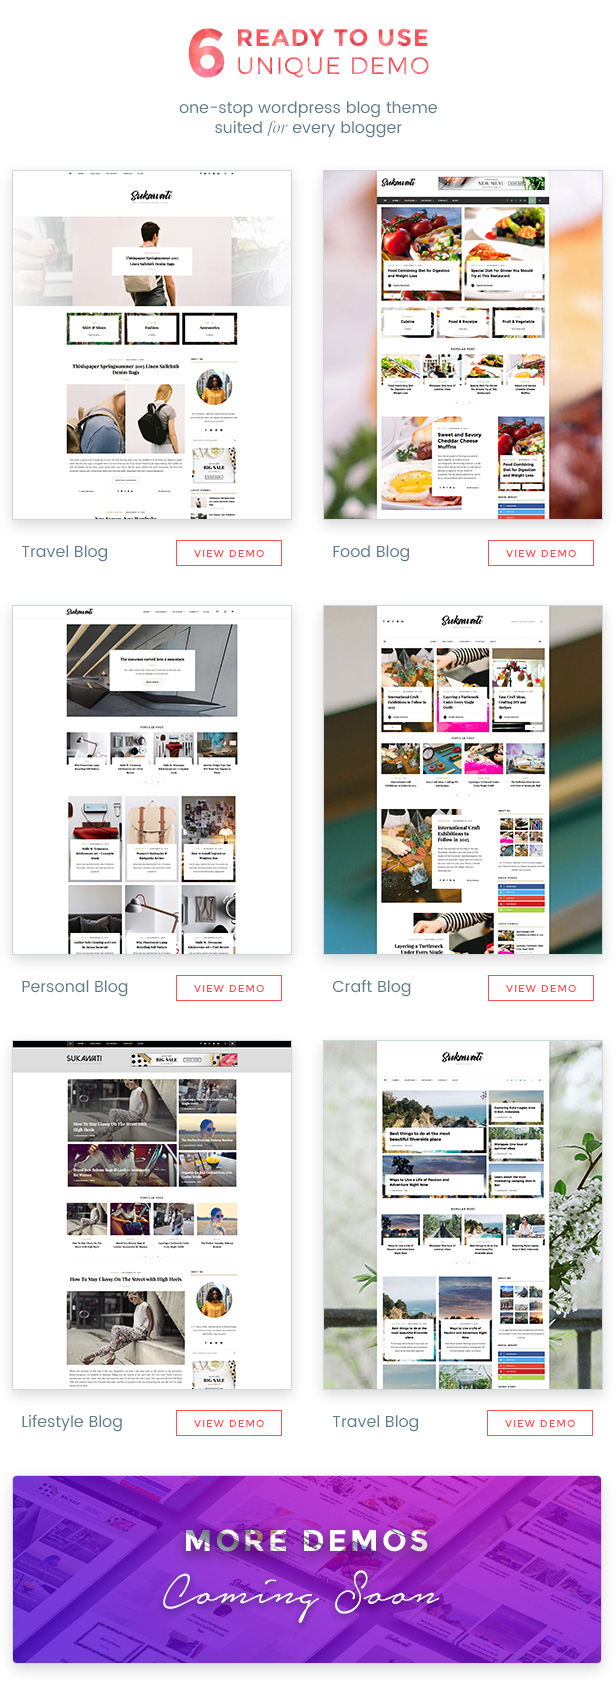 Sukawati - MultiConcept WordPress Blog Theme - 2